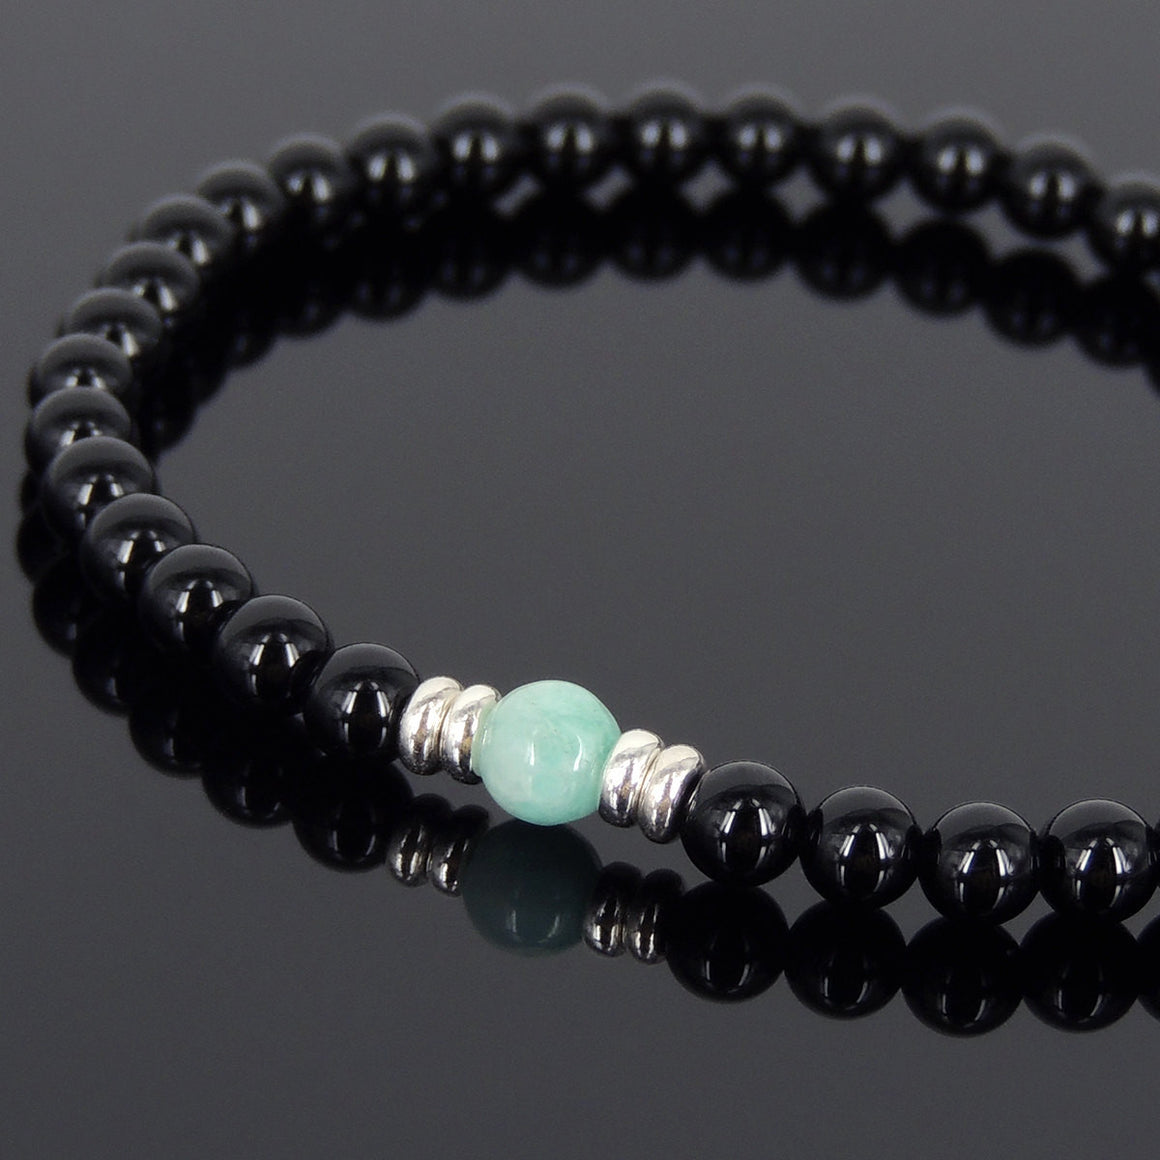 Bright Black Onyx & Amazonite Healing Gemstone Bracelet with S925 Sterling Silver Spacers - Handmade by Gem & Silver BR565